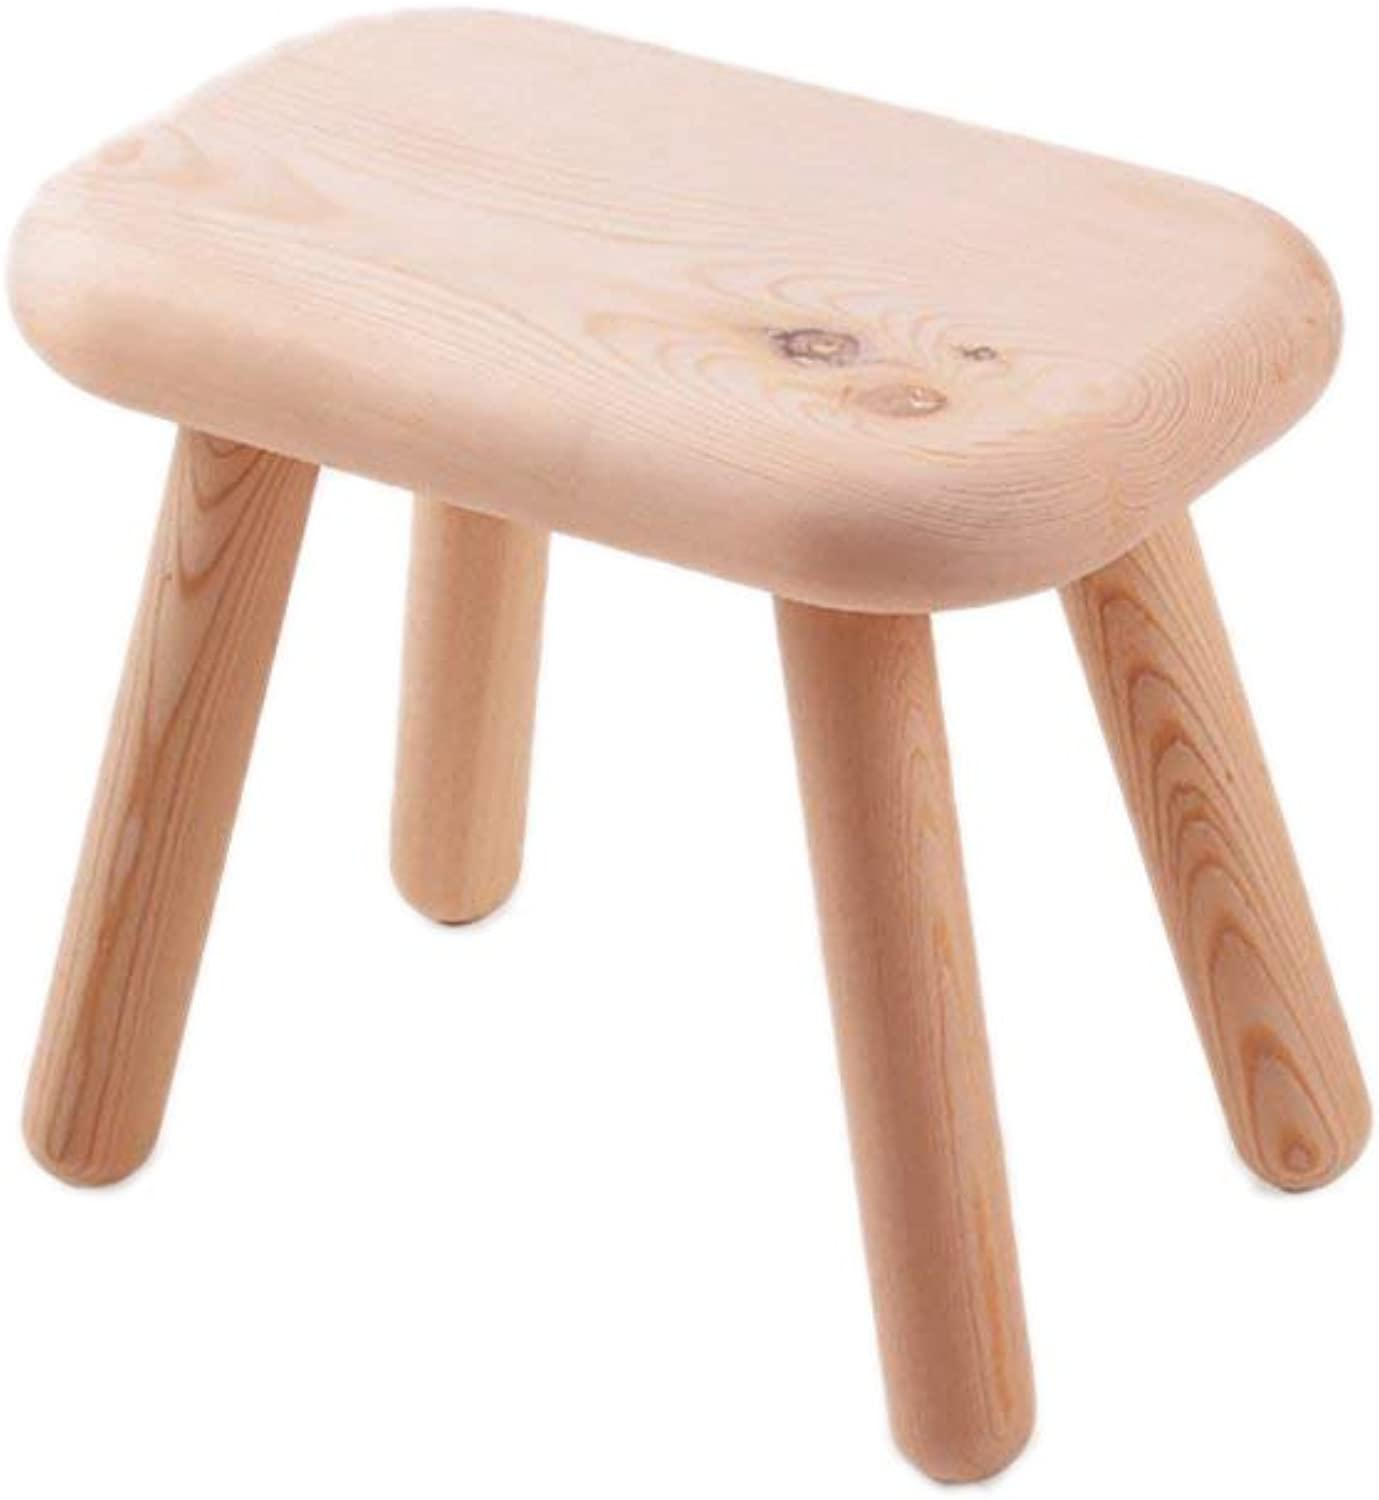 Stool Chair Stool Pine shoes Bench Solid Wood Stool Stool Small Stool Home Coffee Table Pier Stool